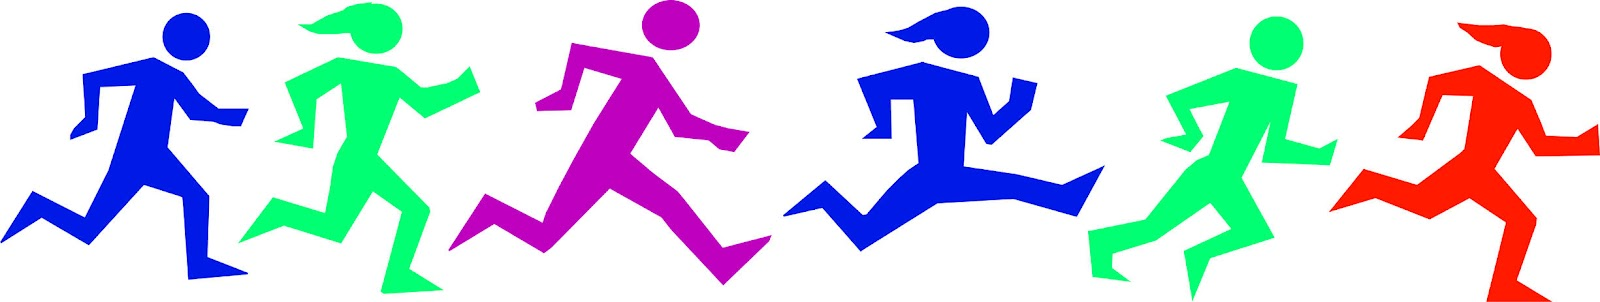 Runner pictures clip art picture black and white download Runners Clip Art & Runners Clip Art Clip Art Images - ClipartALL.com picture black and white download